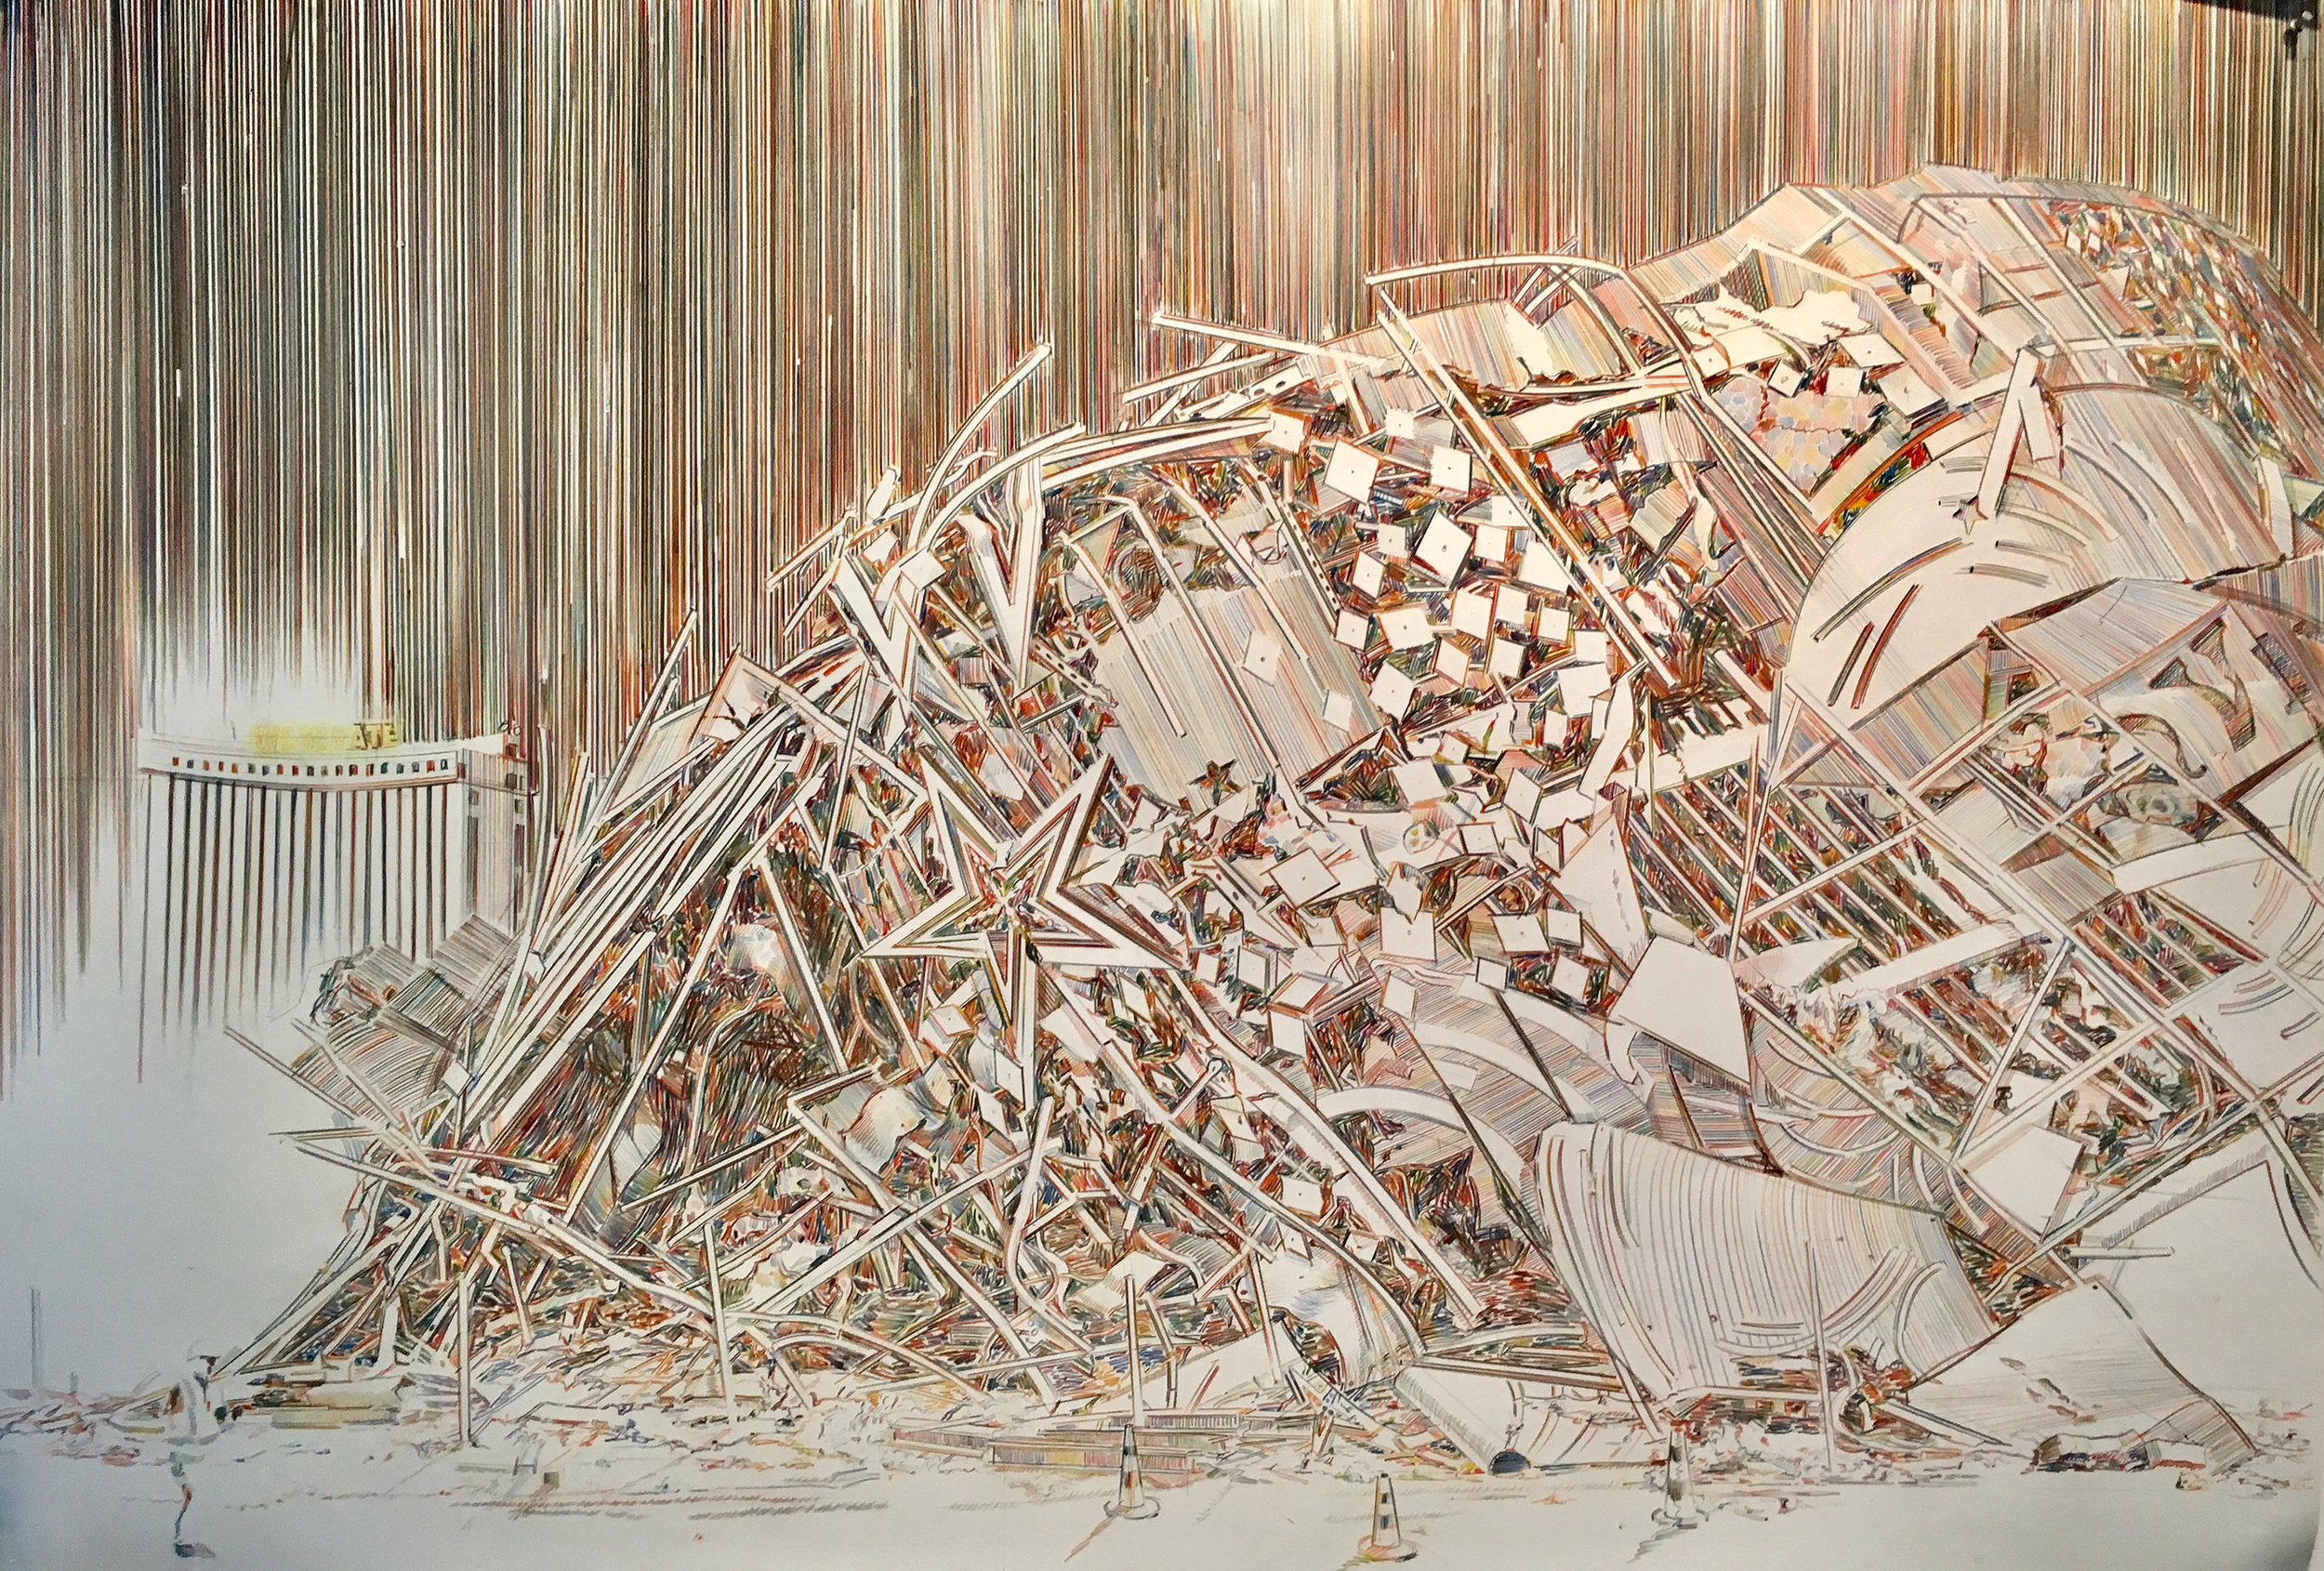 Riviera Rubble, 2017, Colored pencil and graphite on paper, 41 x 60 inches